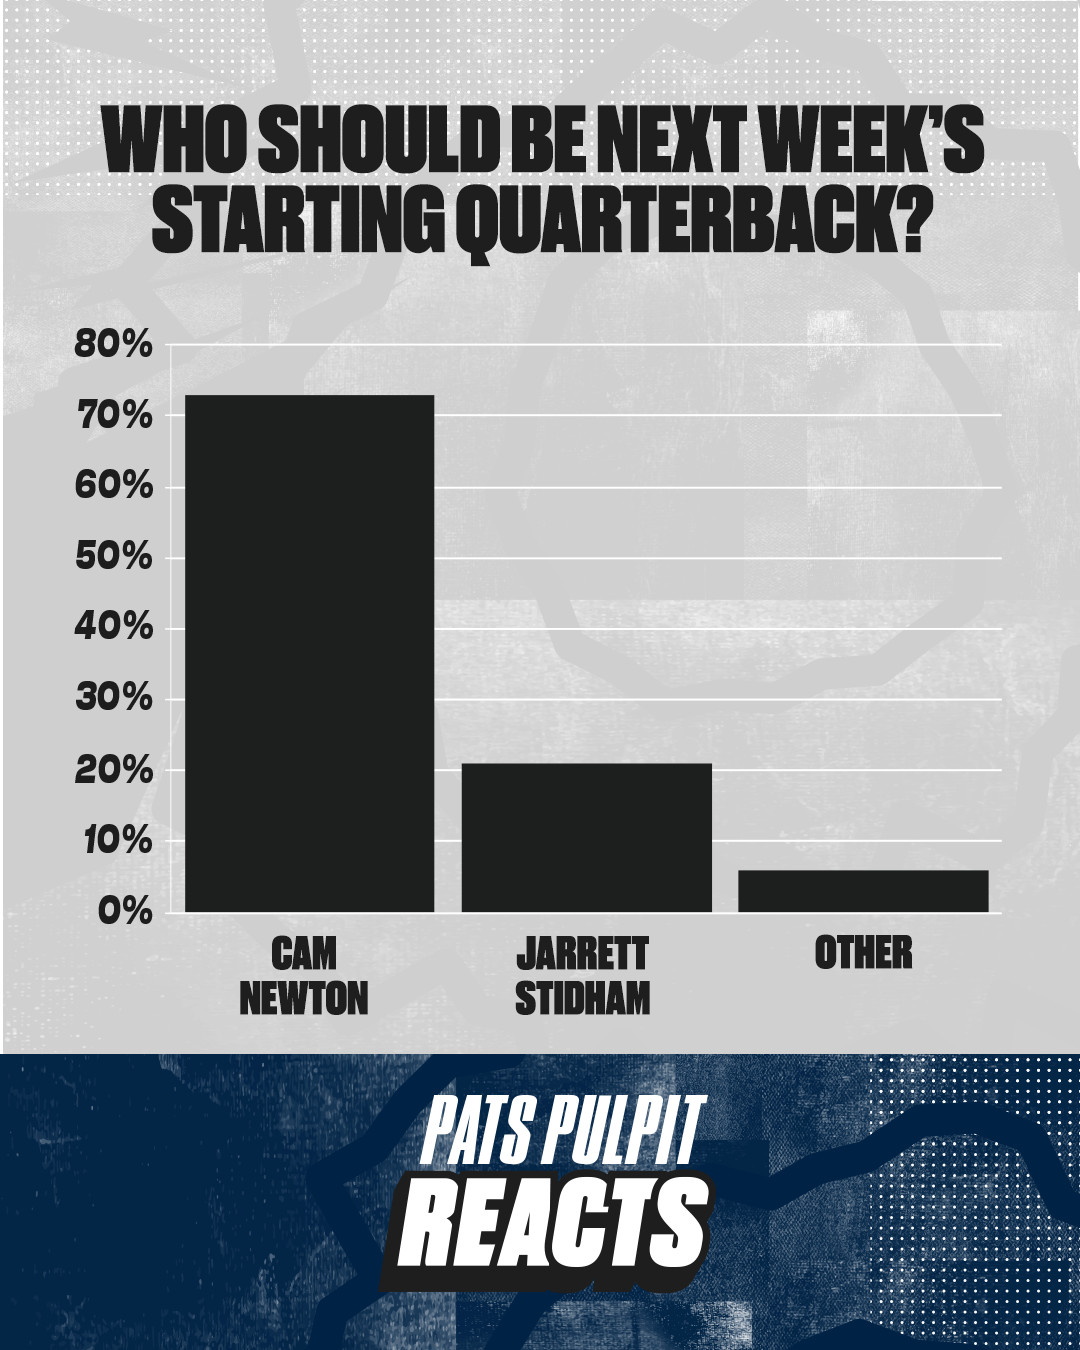 Patriots fans will want Cam Newton as their starting quarterback for the rest of the 2020 NFL season. Newton received 72 percent of the votes when we asked New England fans who should be the team's QB right now. Backup Jarrett Stidham had just over 20 percent of the vote, while a small percentage voted for 'other.'